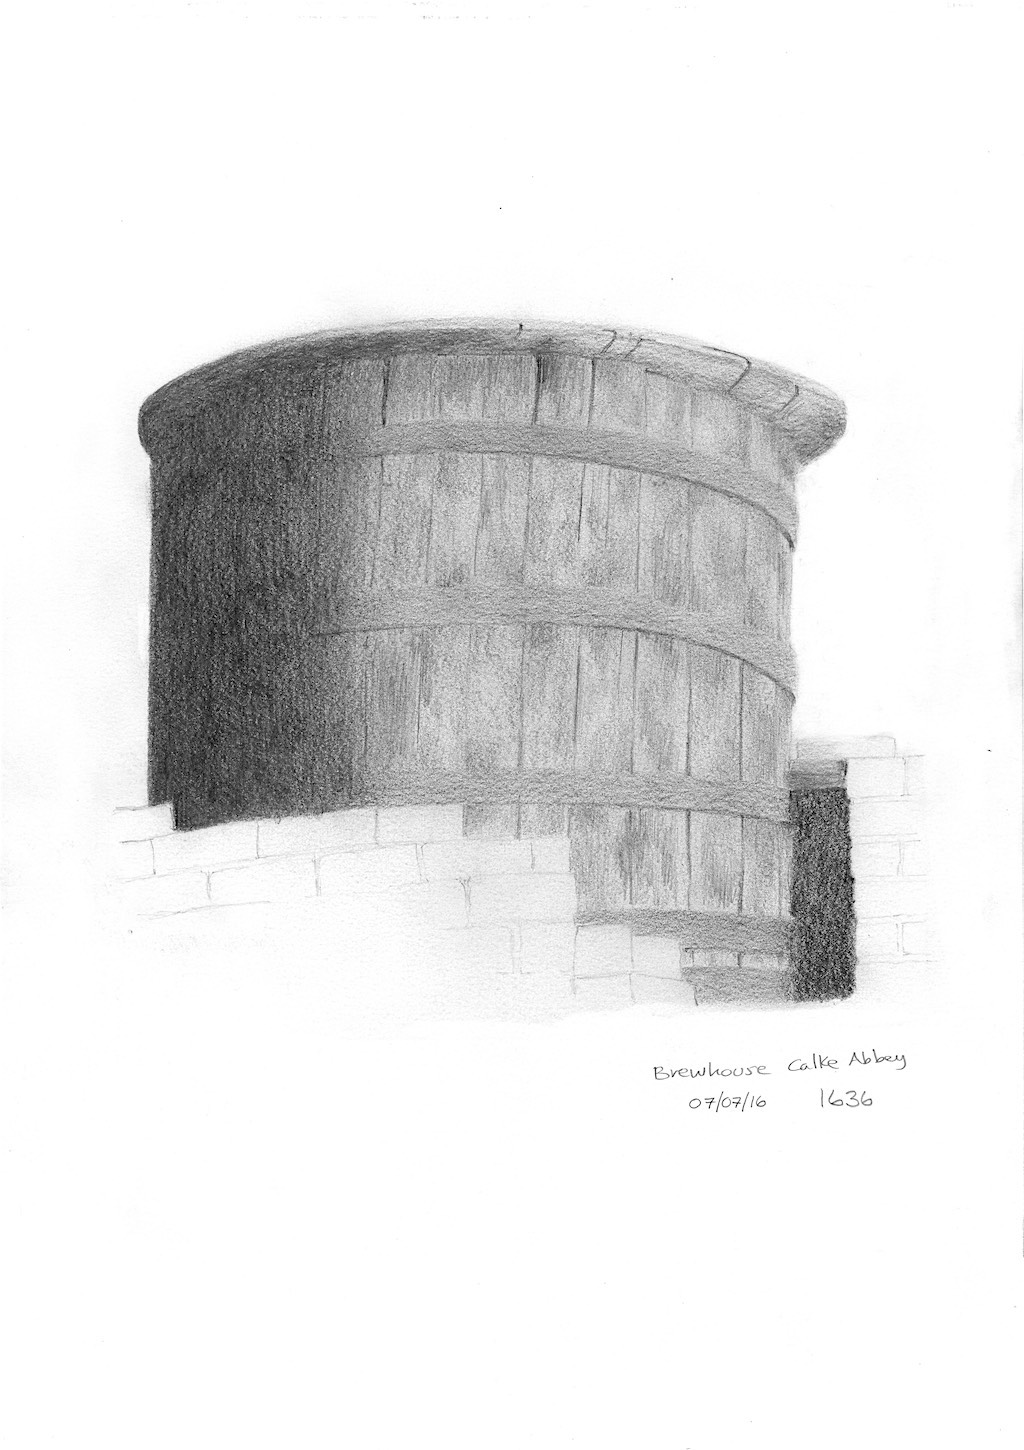 Sketch of Brewhouse brew barrel at Calke Abbey